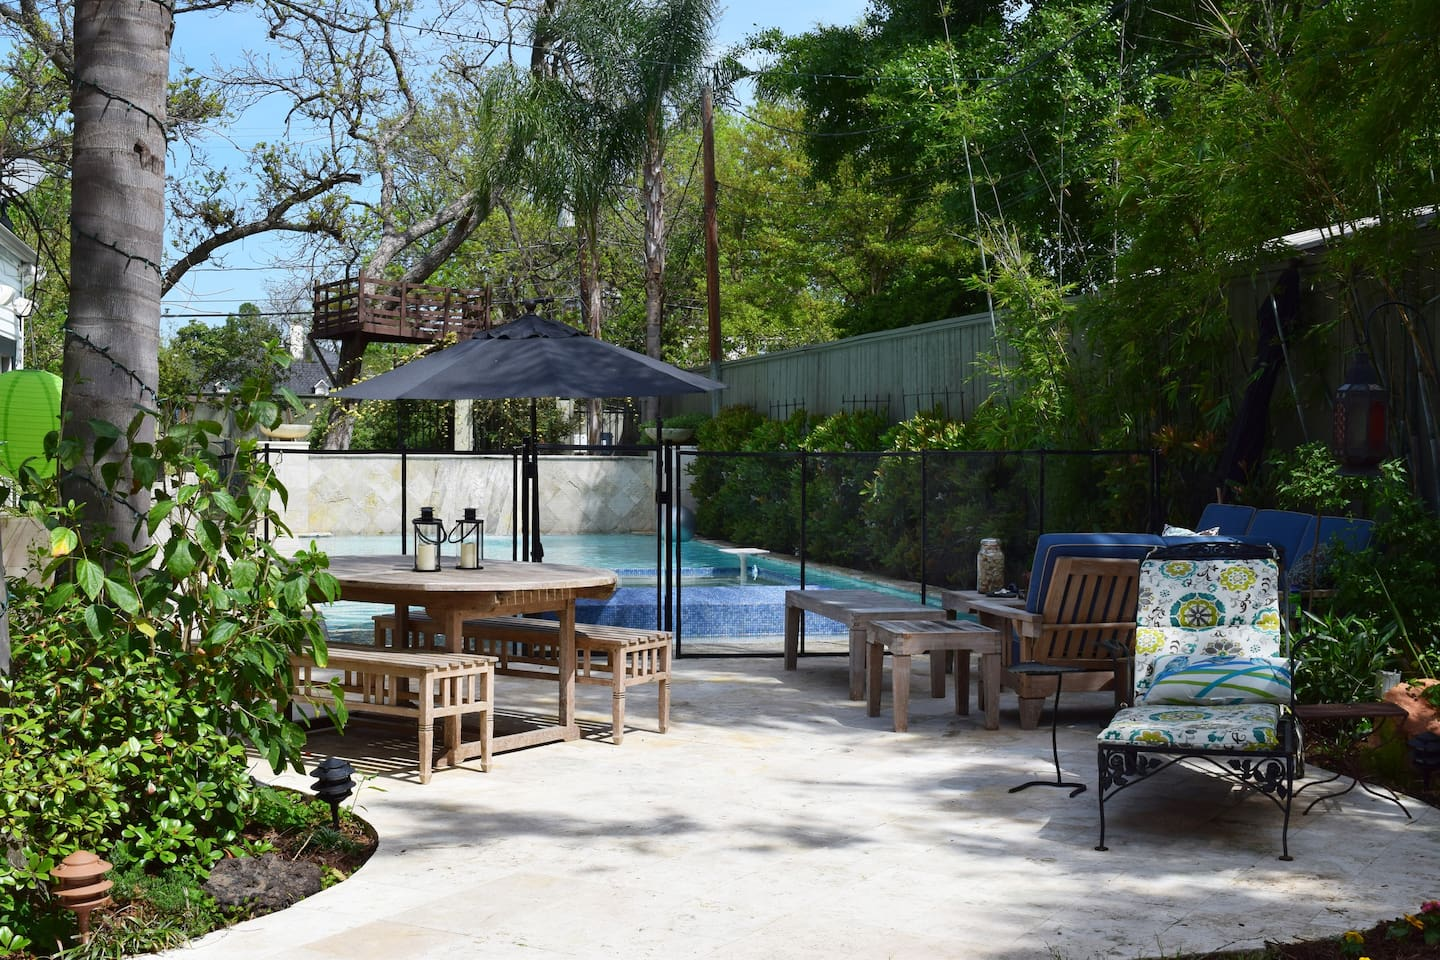 Relax by the saltwater pool or take a cool dip. Hot tub & pool not heated.